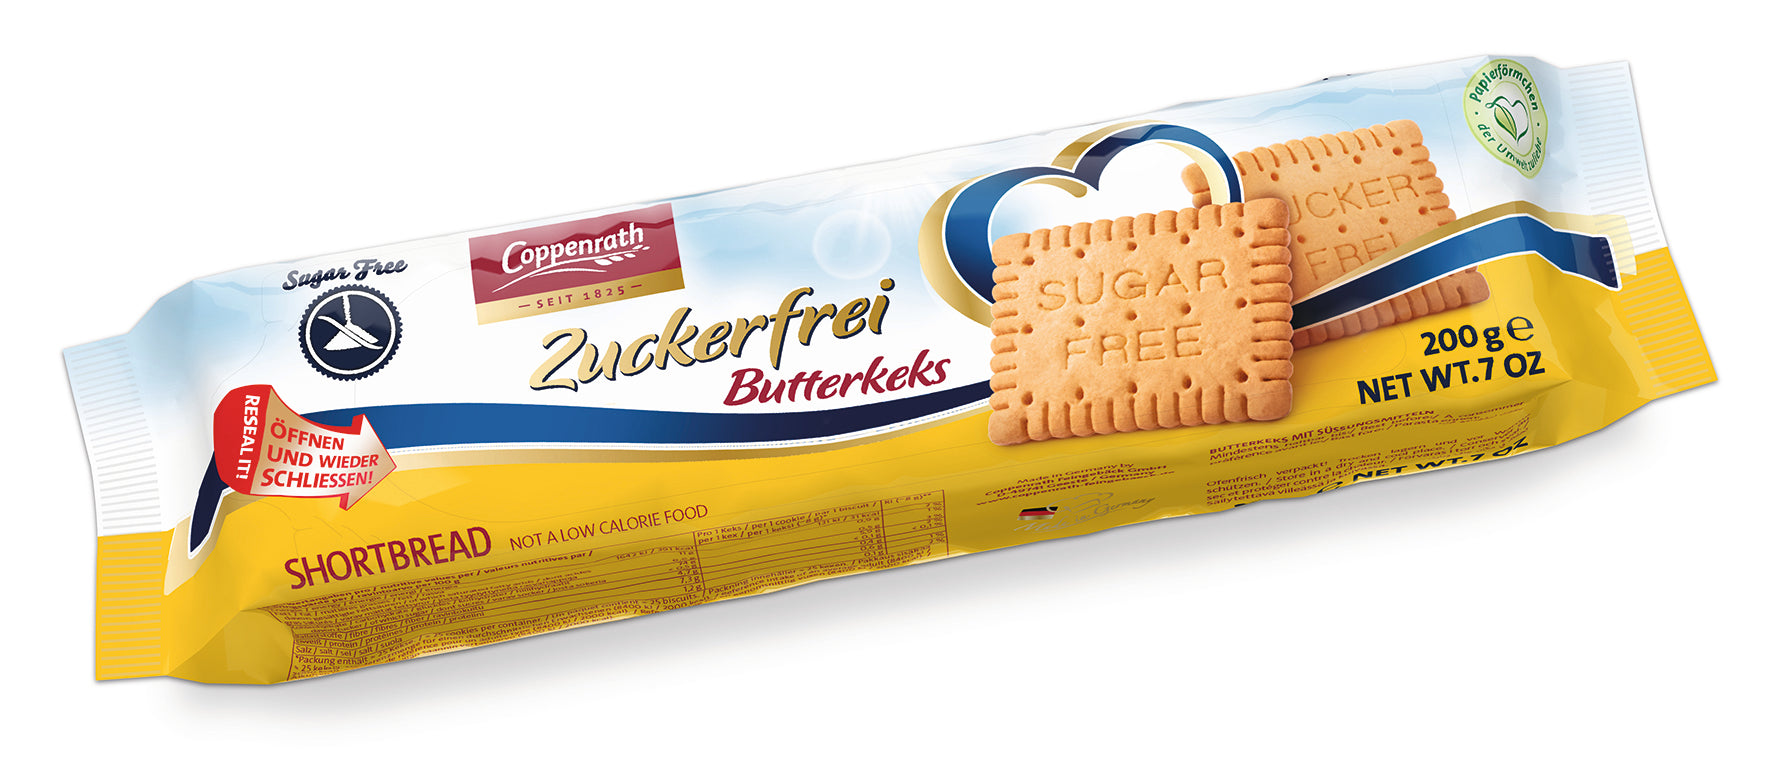 Coppenrath Sugar-Free Butterkeks 200g